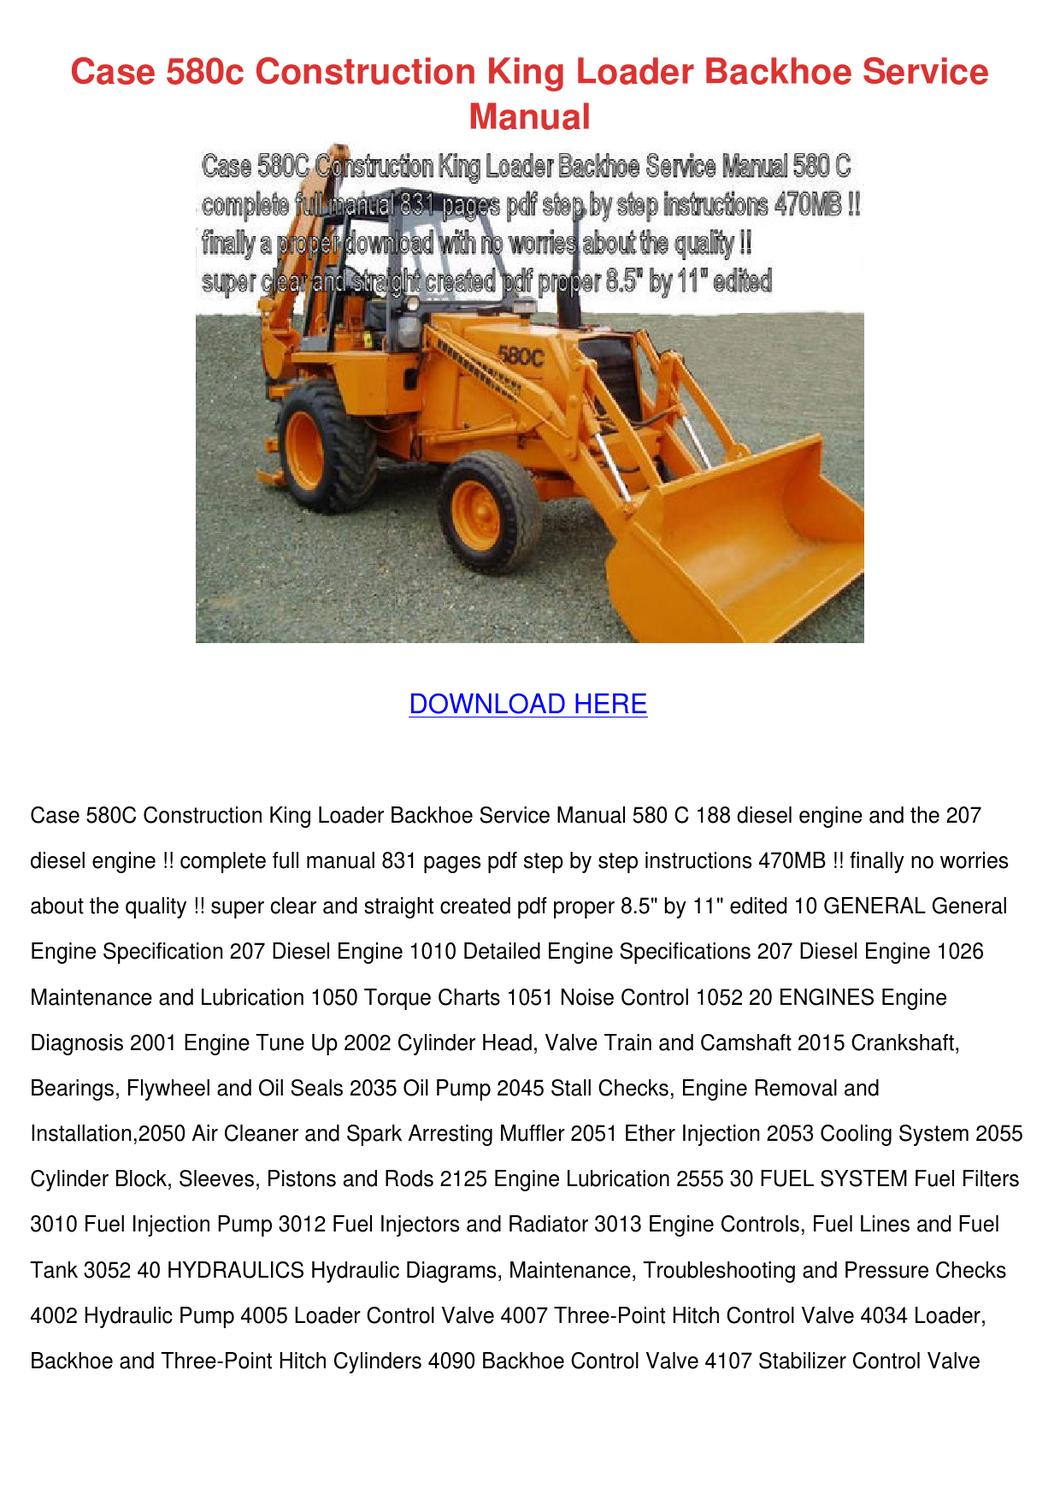 Case 580c Construction King Loader Backhoe Se by